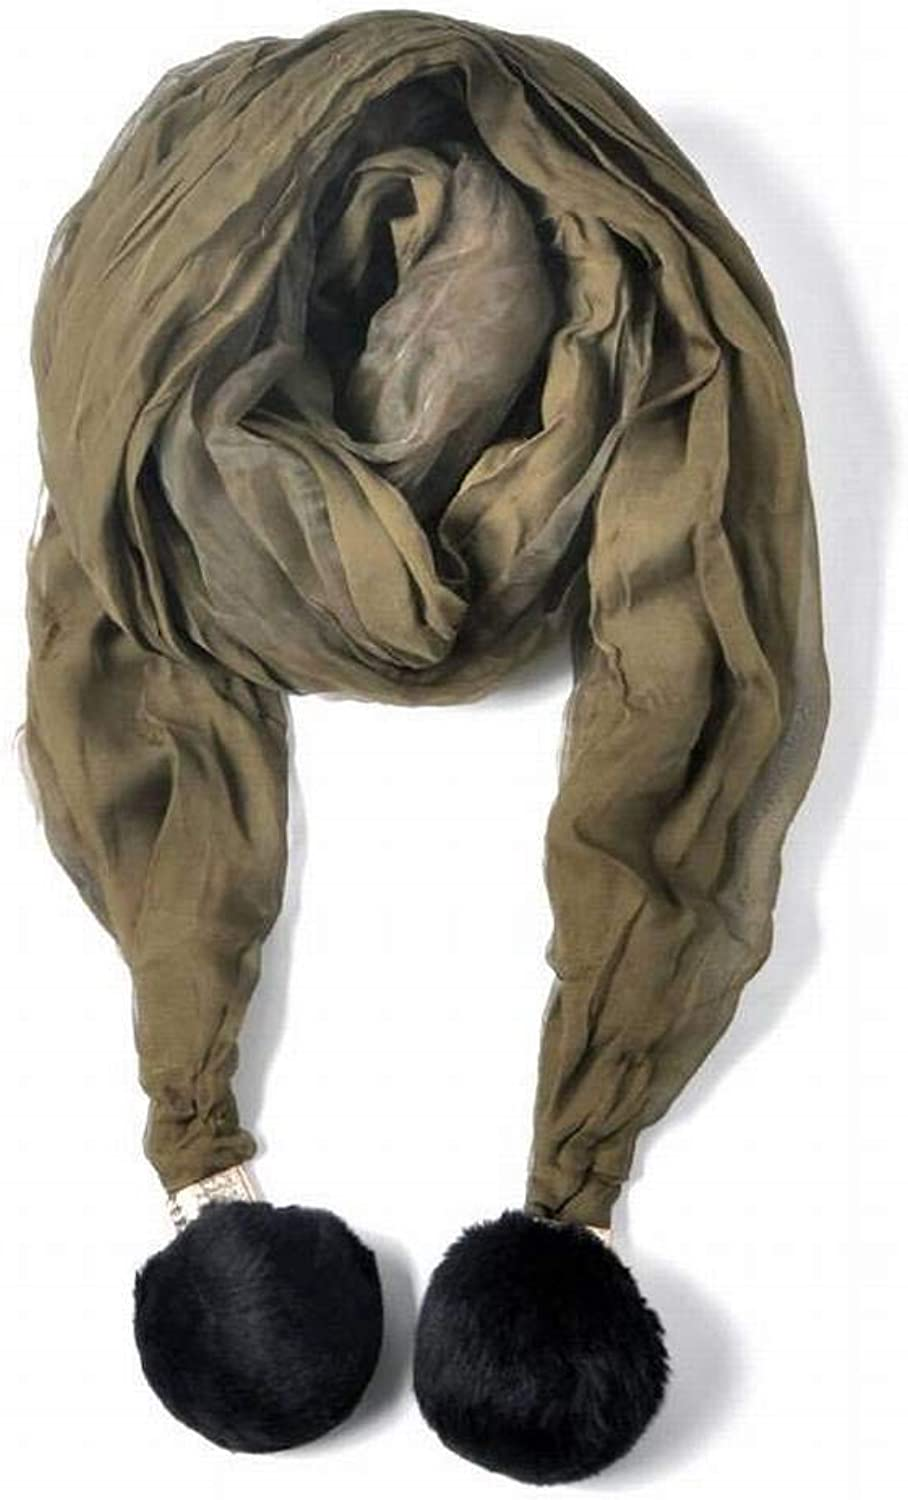 WJS European and American Streets Pure color Wool Men Warm Monochrome Medium Long Autumn and Winter Outdoor Multi-Functional Fgreyion Trend Joker Warm Shawl Scarf Gift